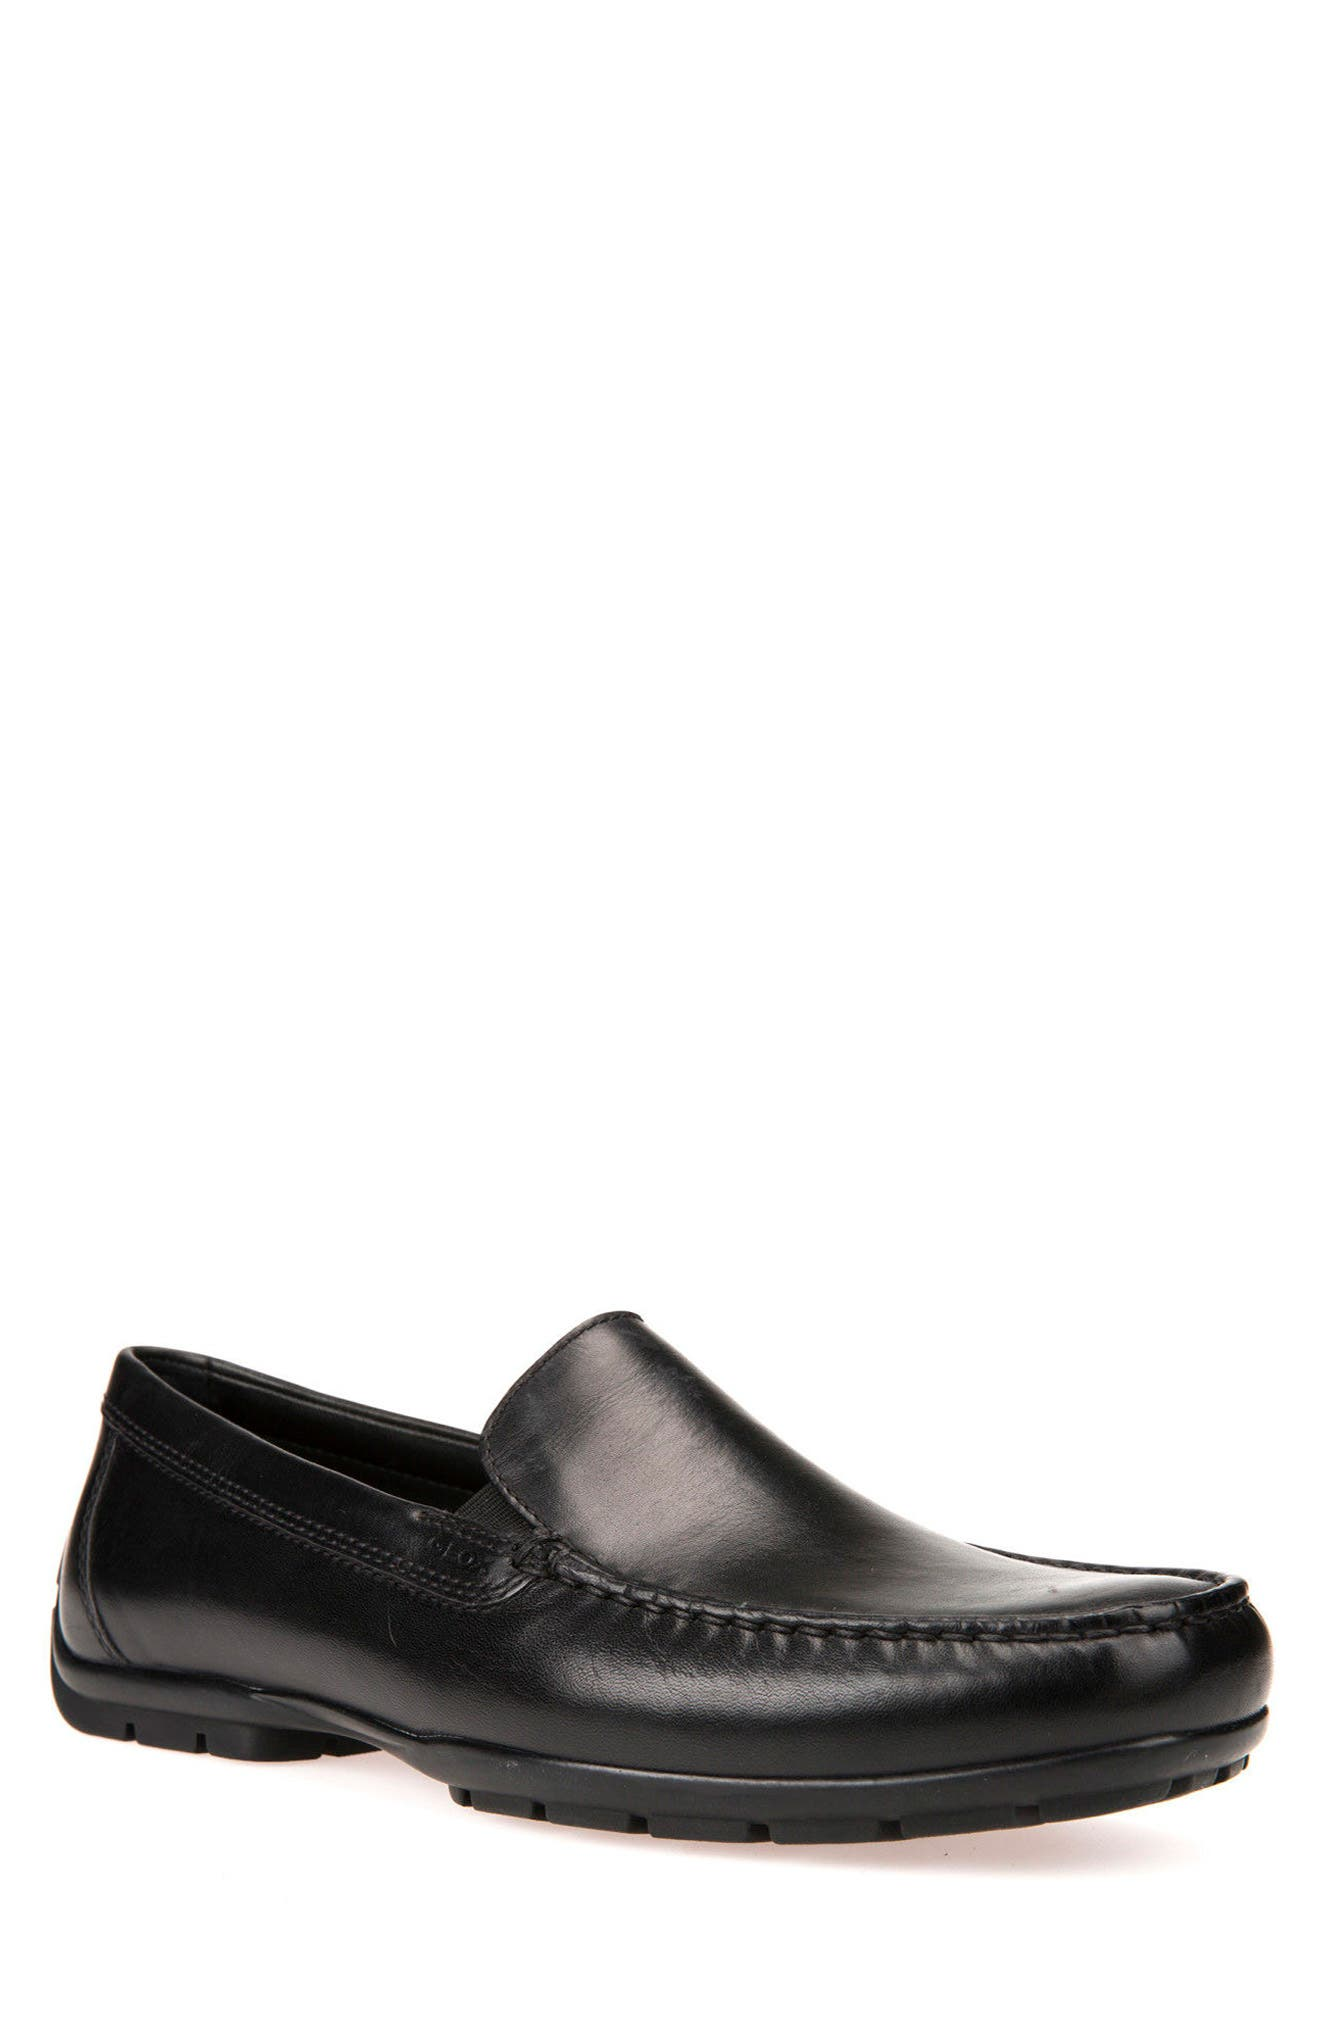 Alternate Image 1 Selected - Geox Monet 2Fit 11 Driving Moccasin (Men)